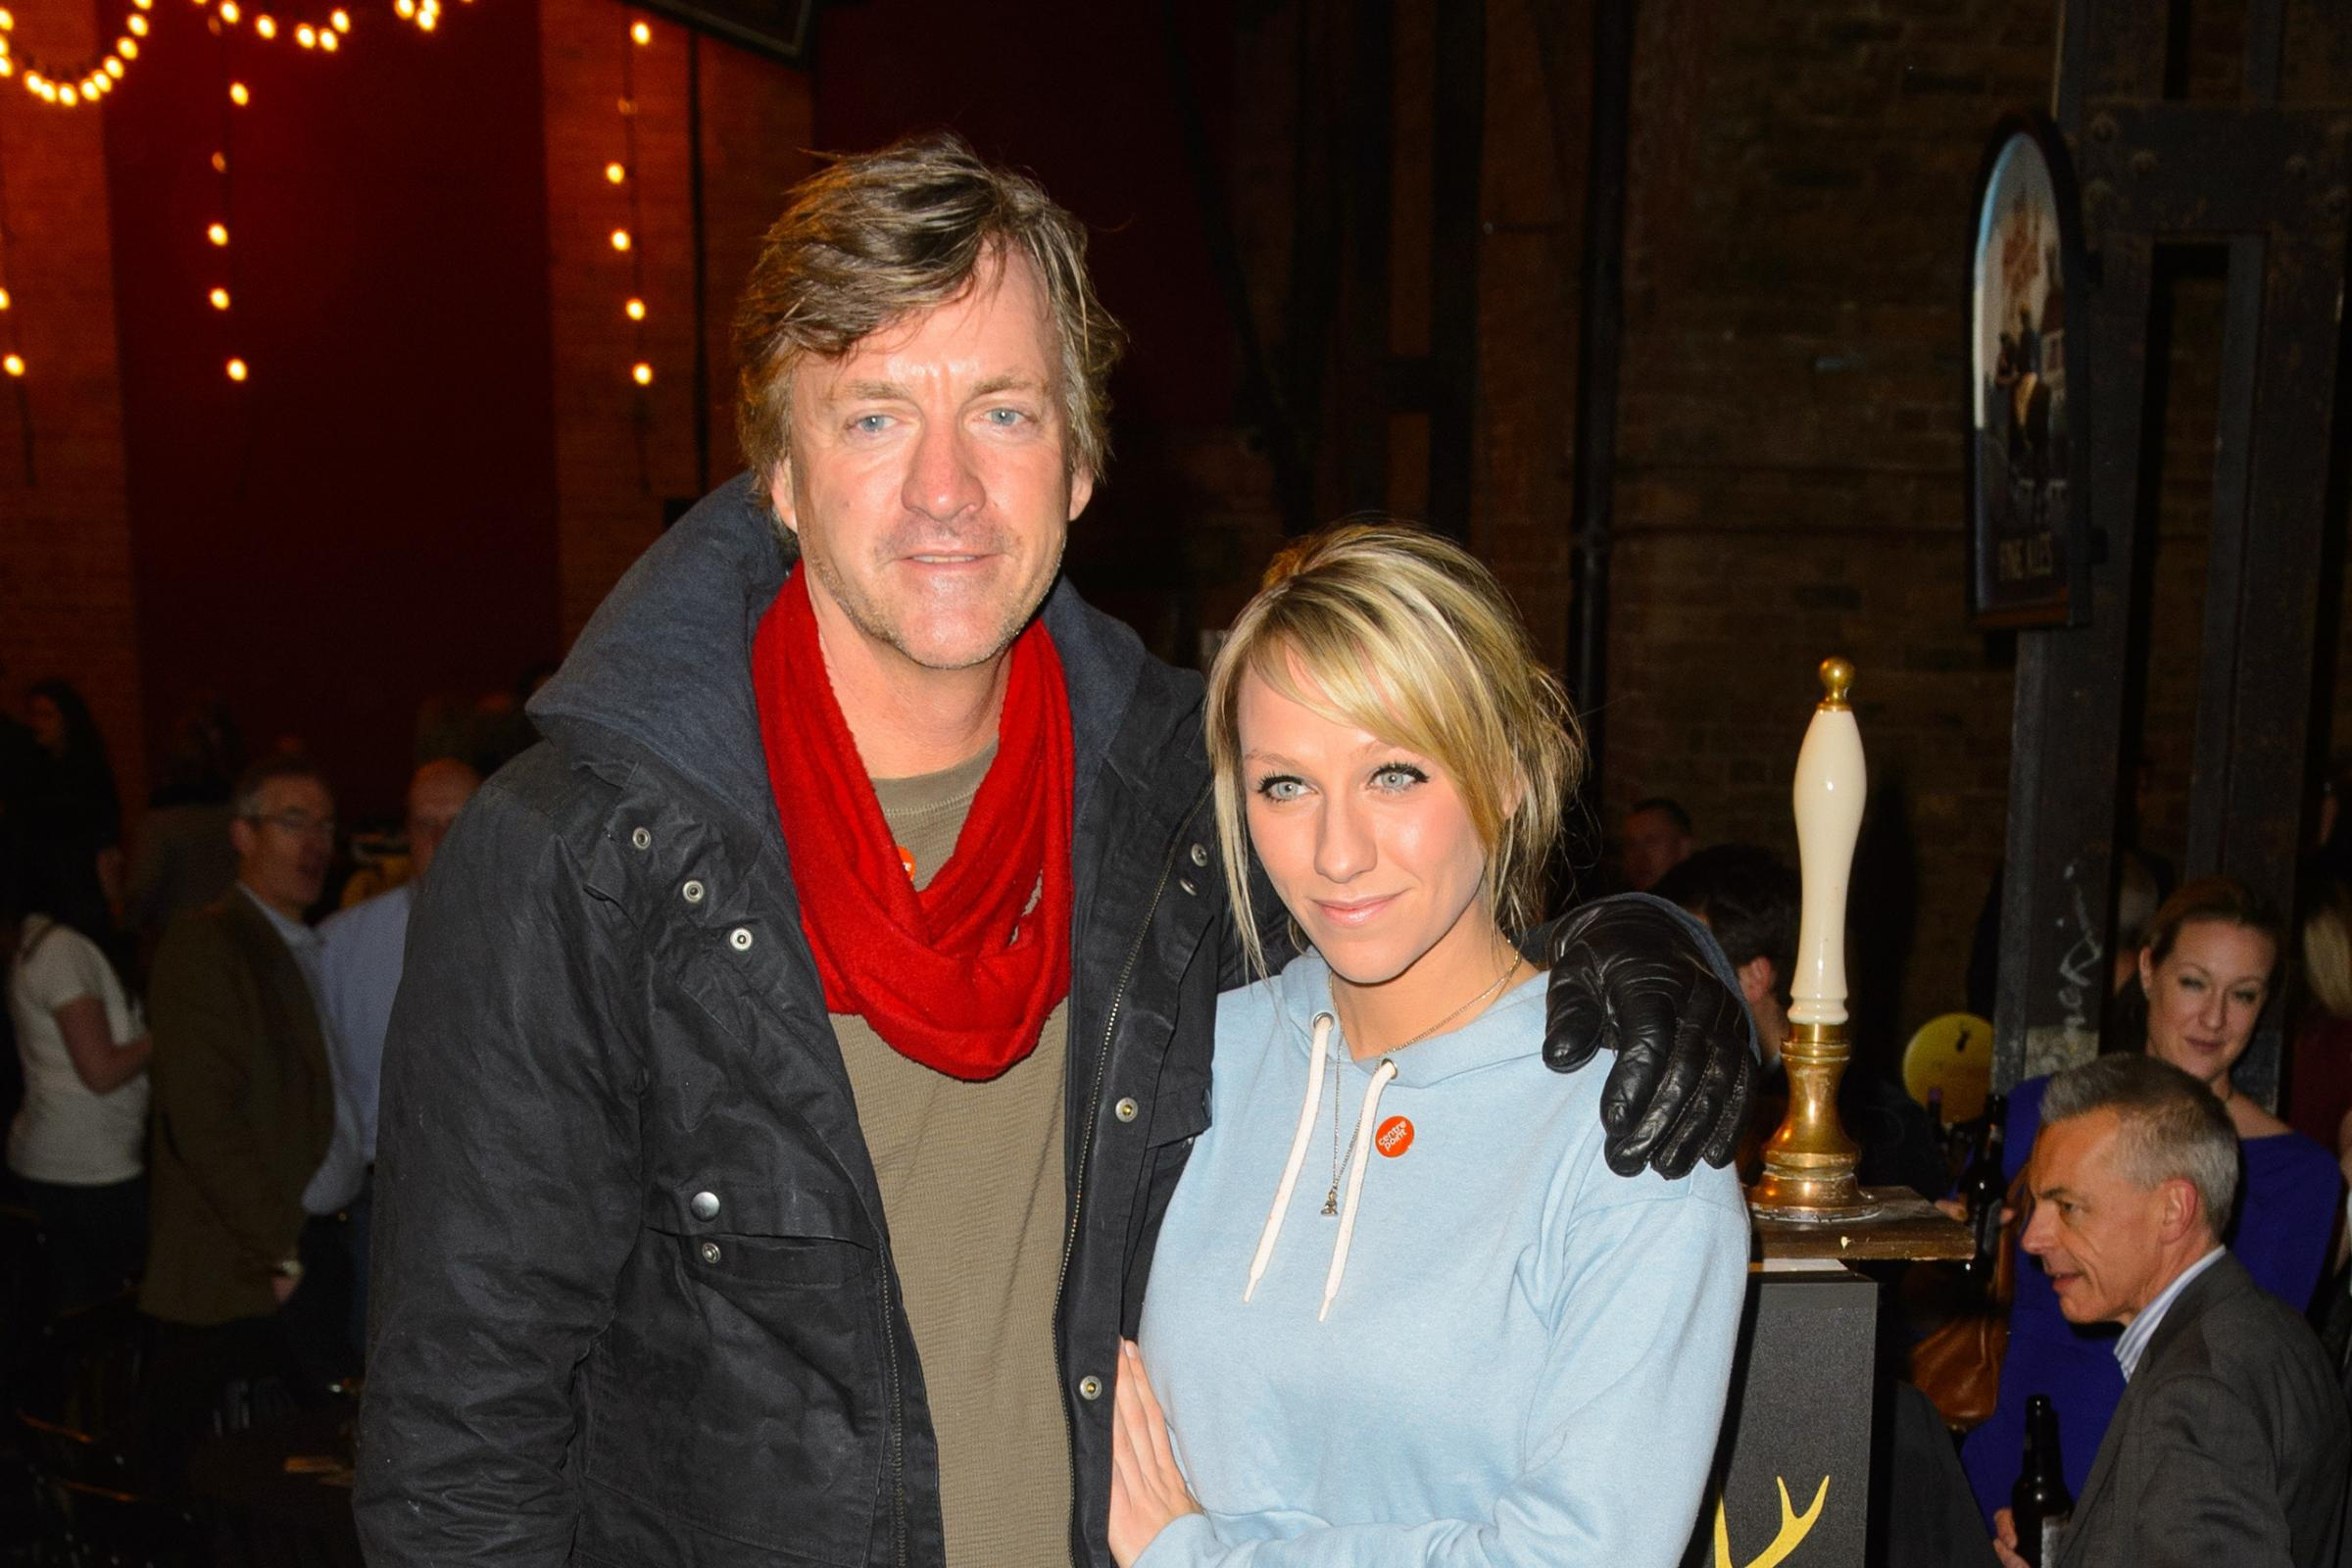 Richard Madeley with his daughter Chloe